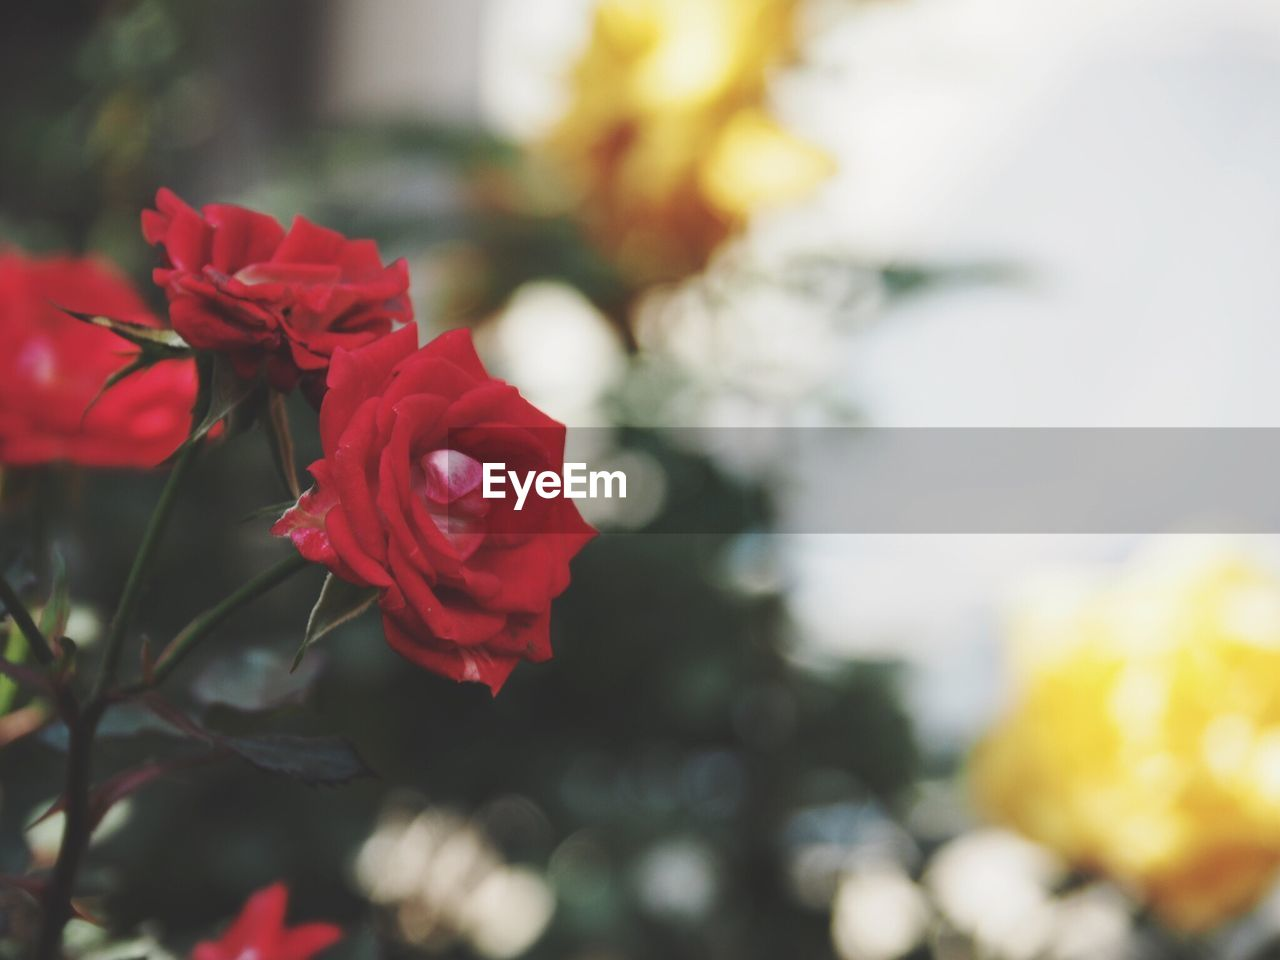 flower, petal, beauty in nature, fragility, nature, red, freshness, no people, flower head, rose - flower, focus on foreground, close-up, growth, blooming, day, outdoors